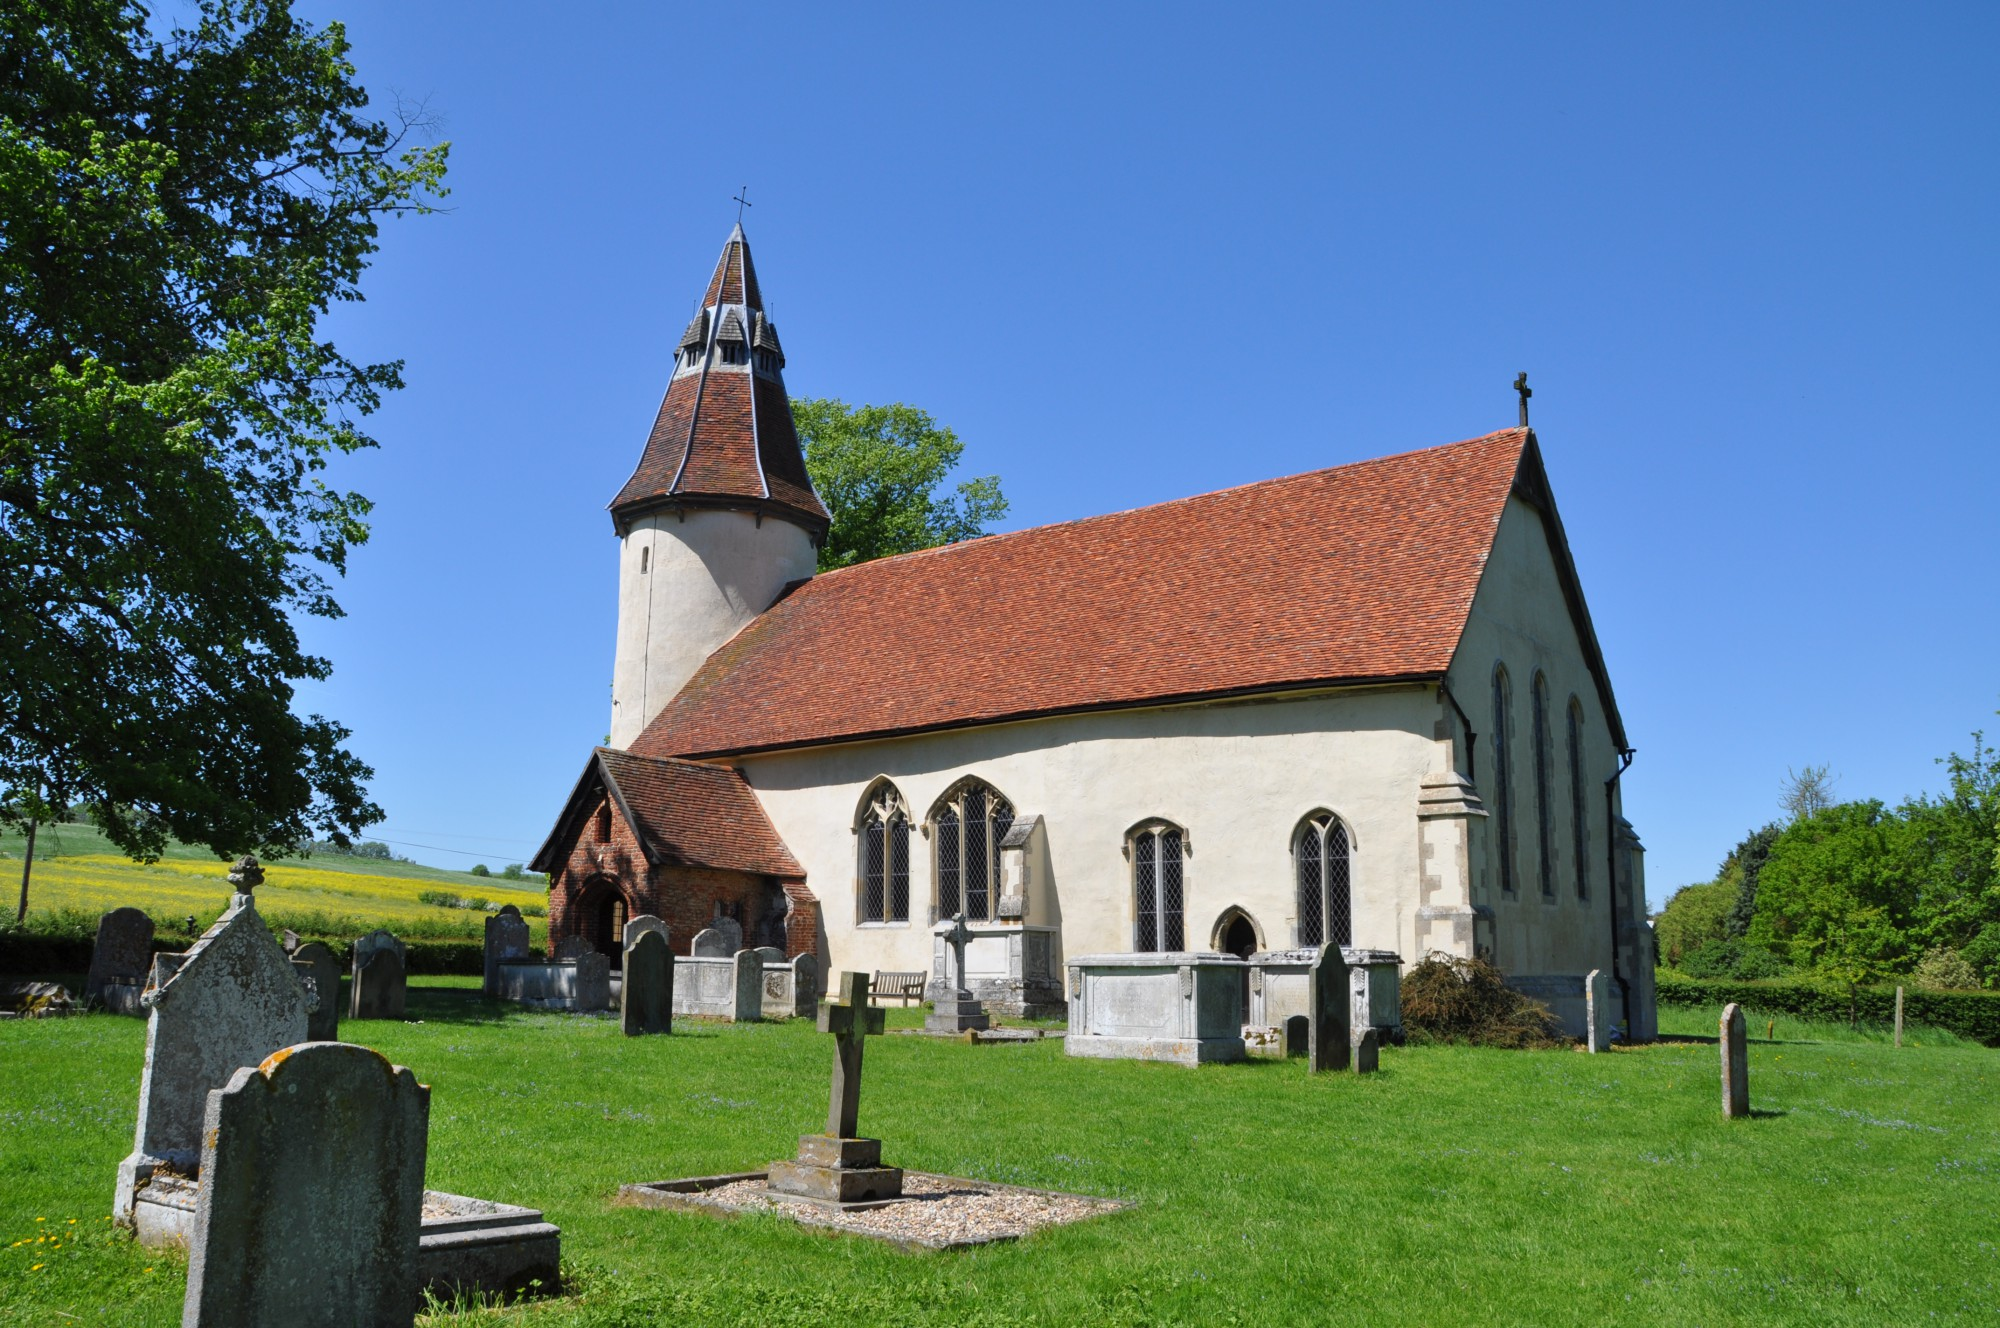 The Church of the Holy Innocents at Lamarsh is one of only six round towers in Essex